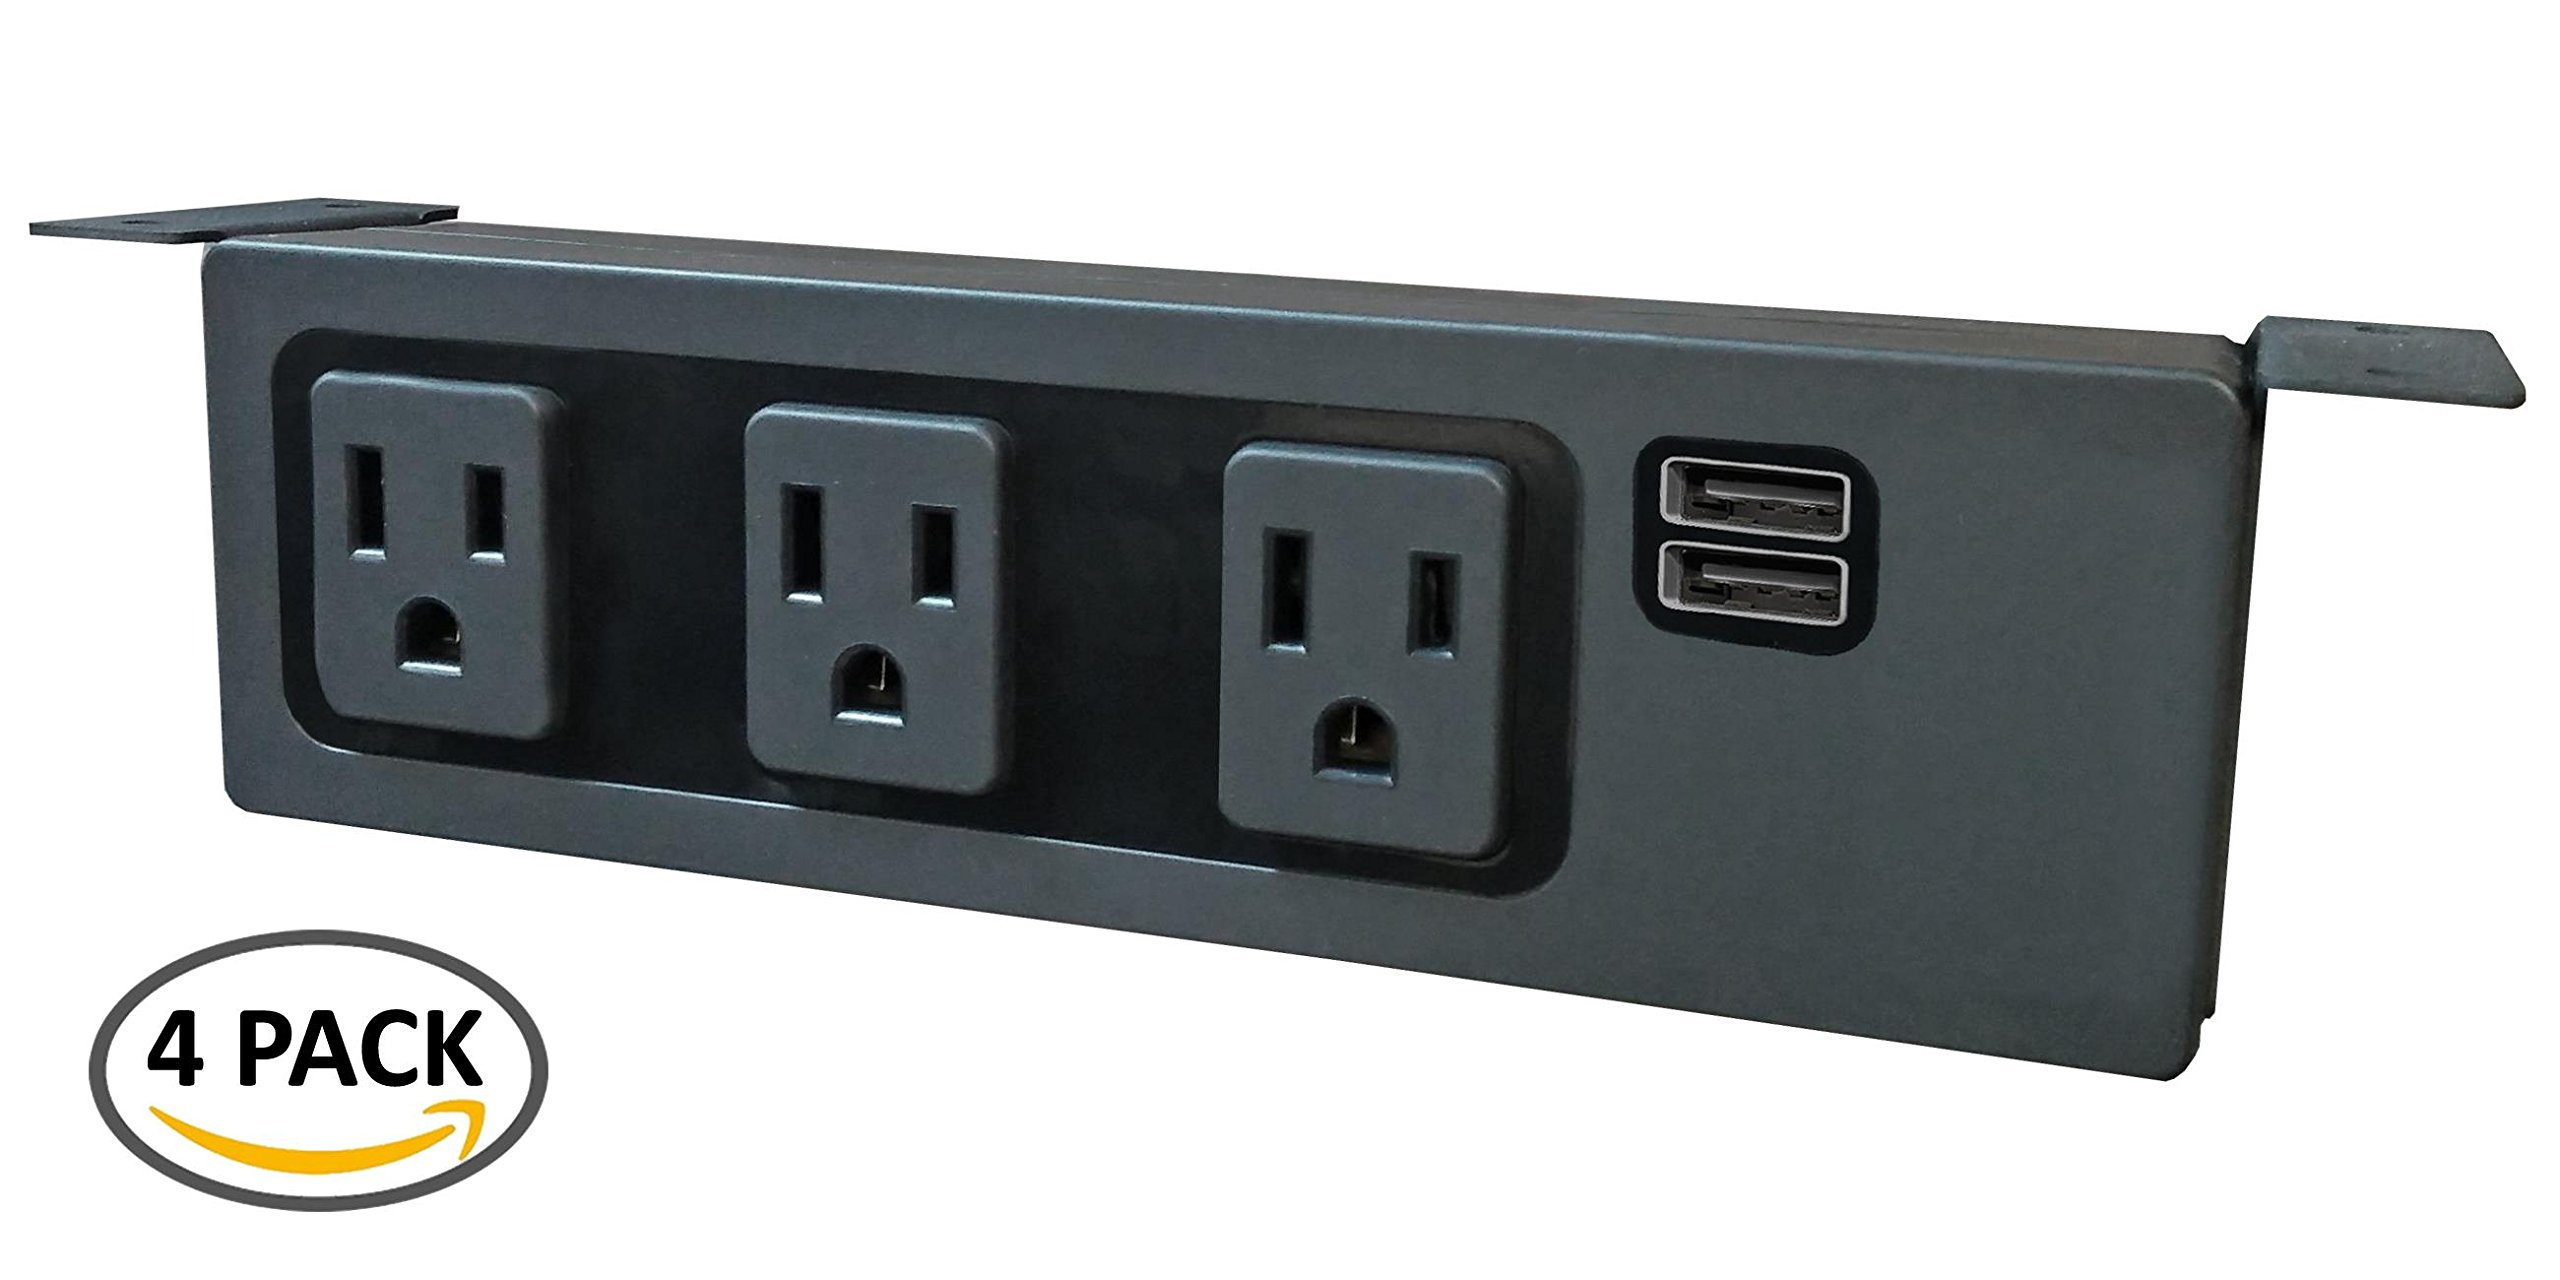 Under The Desk/Table Power Center - 3 Outlets & 2 USB 3.1 Amp Ports (Pack of 4) (Black)